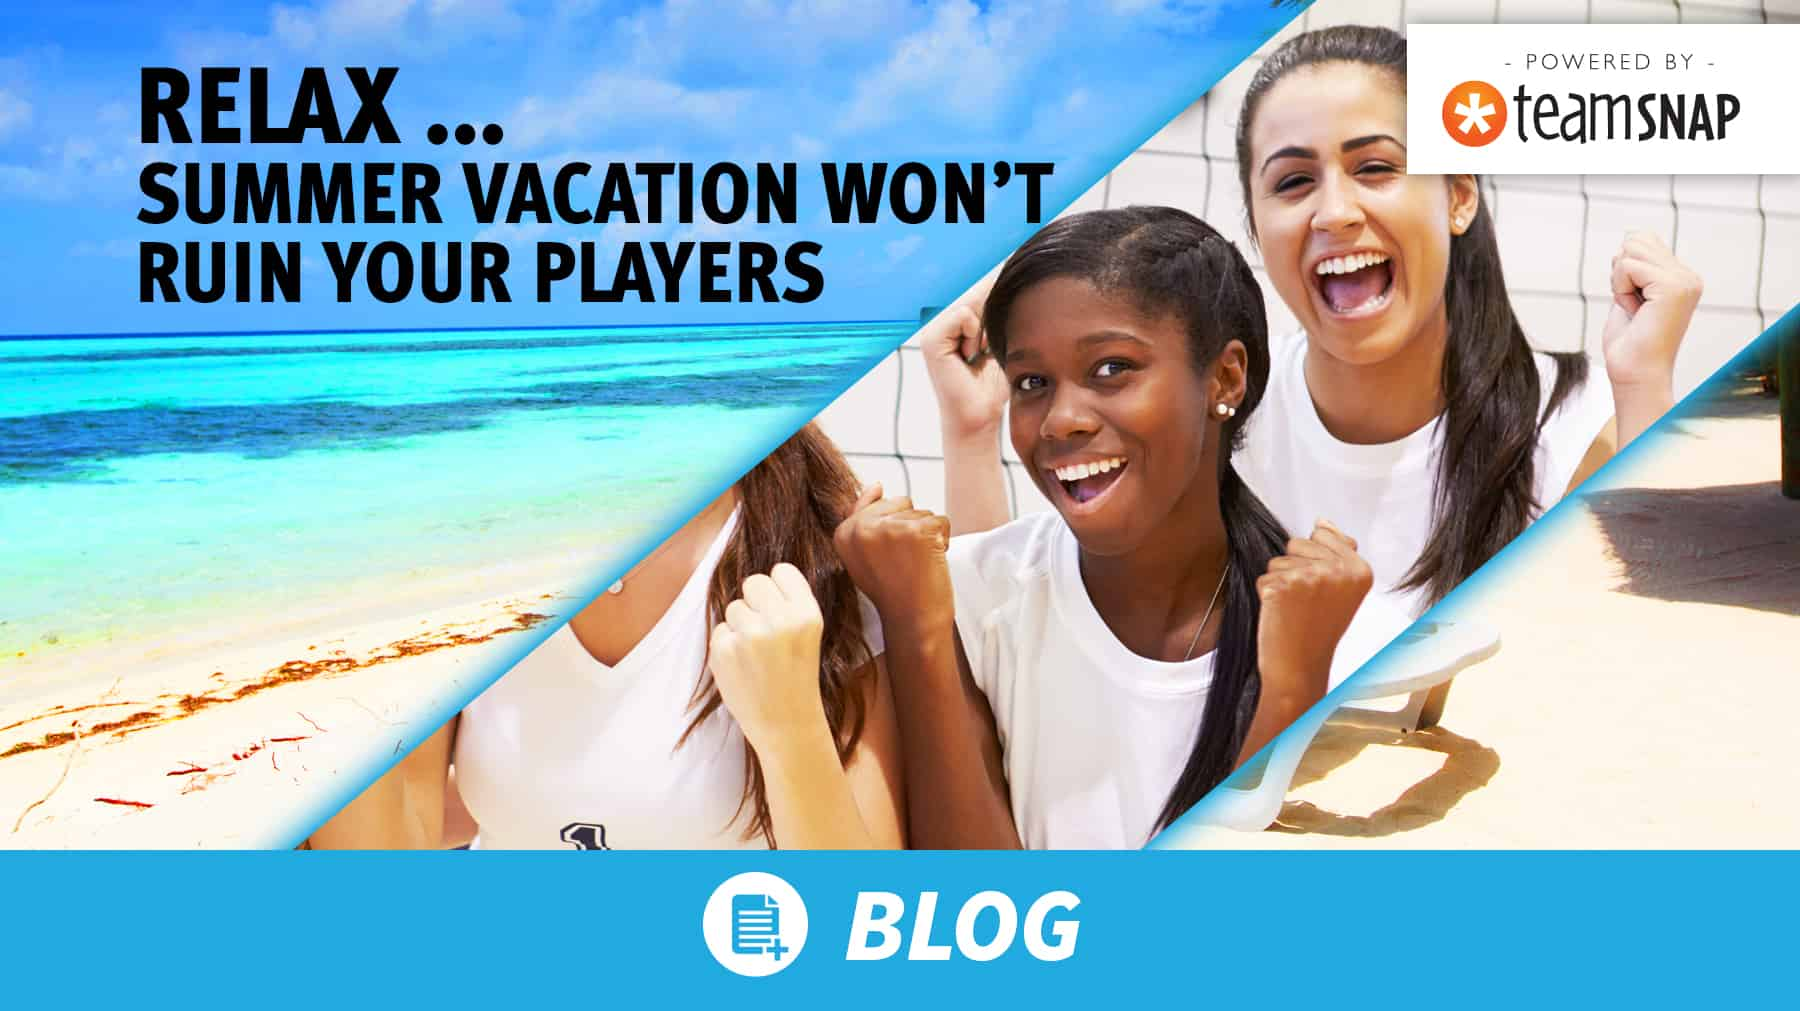 Relax … summer vacation won't ruin your players